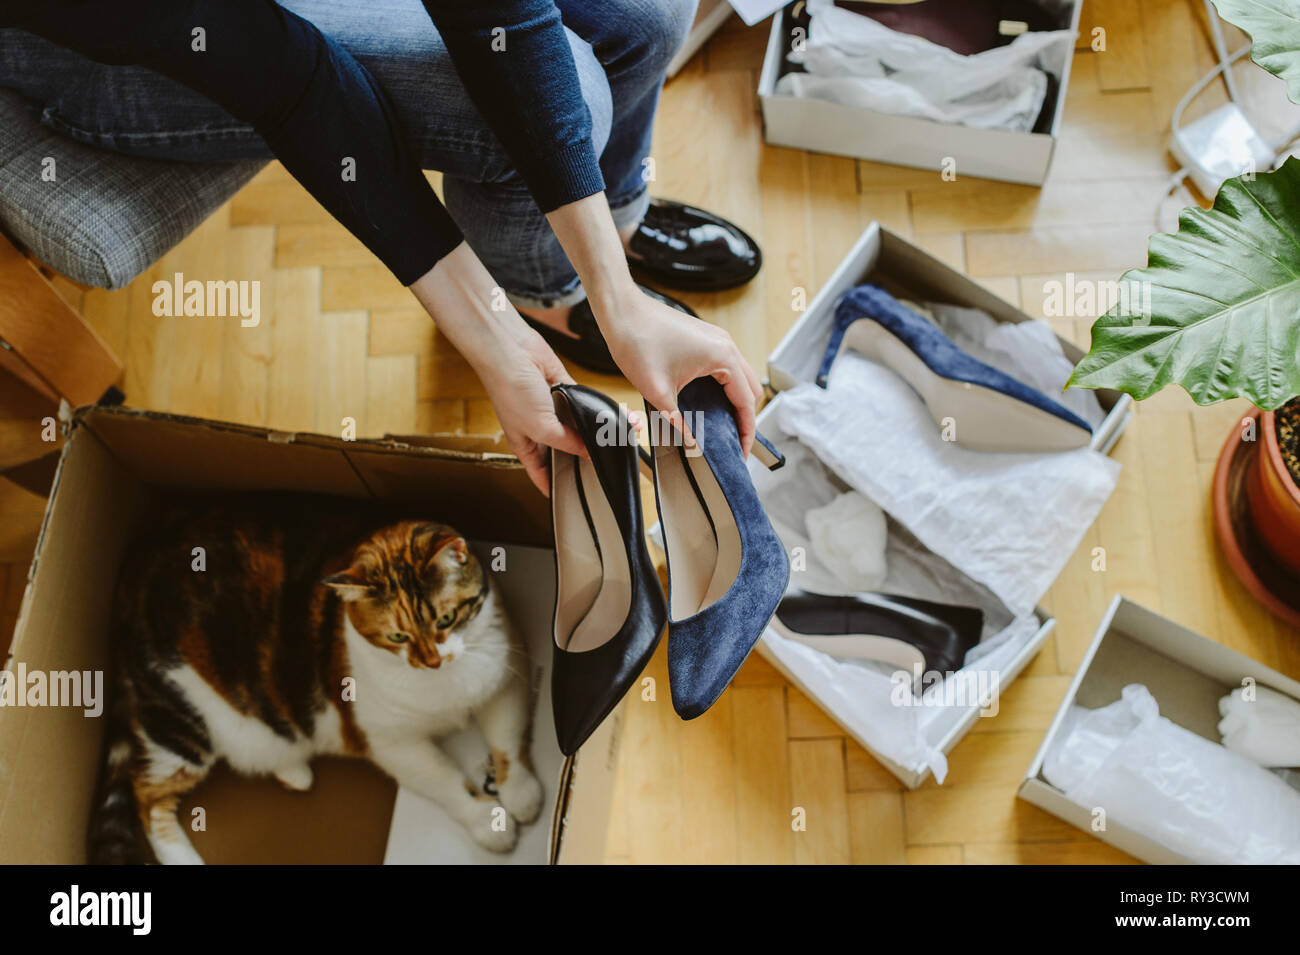 Woman unboxing unpacking several pairs of new shoes bought via online store and curious cat pet inside the box cardboard  - Stock Image